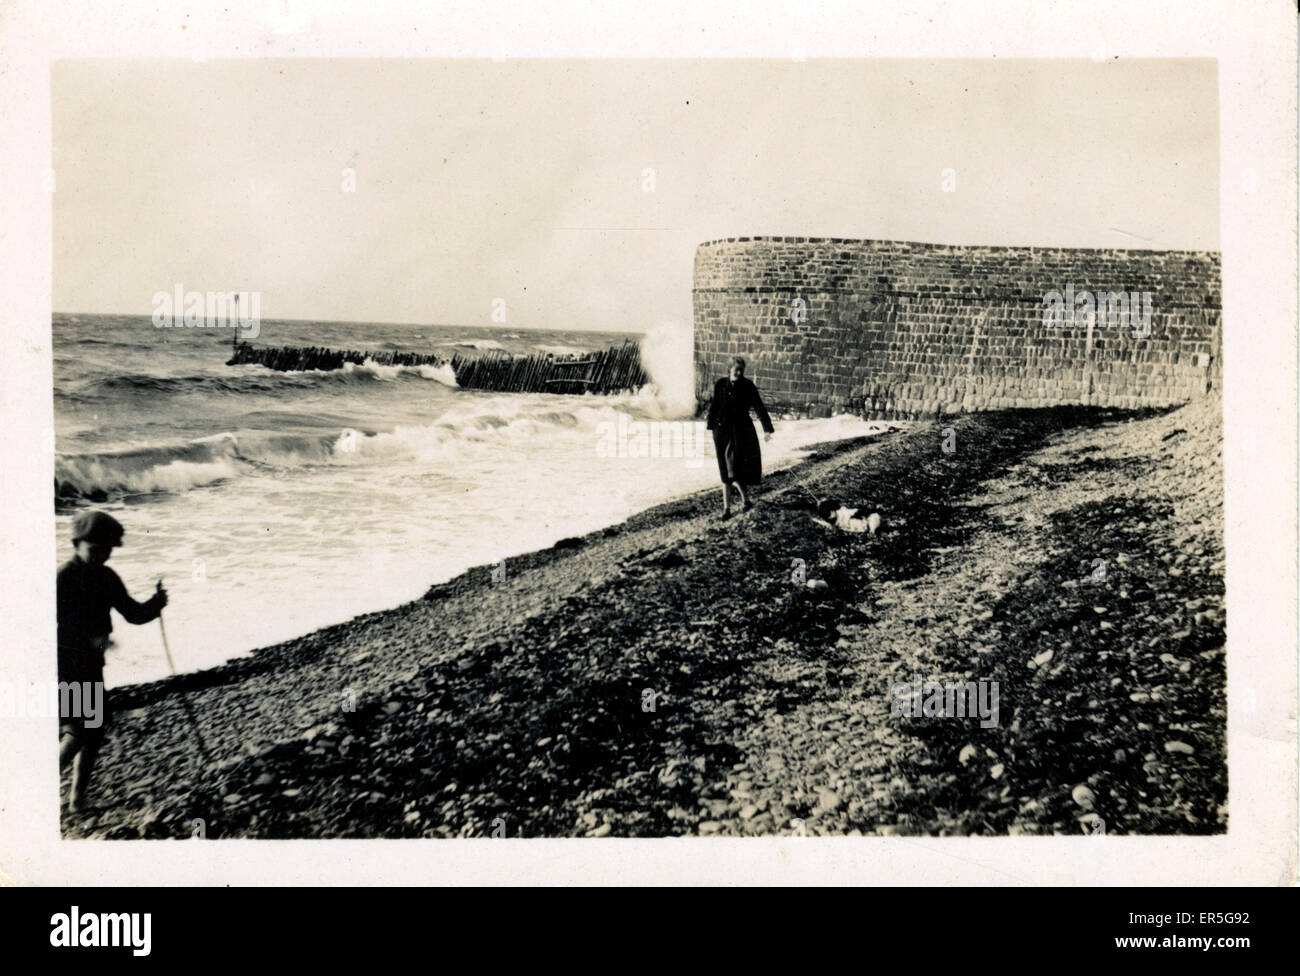 Windy Beach, Thought to be at Aberaeron, near Llan-non, Cardiganshire, Wales.  1932 - Stock Image